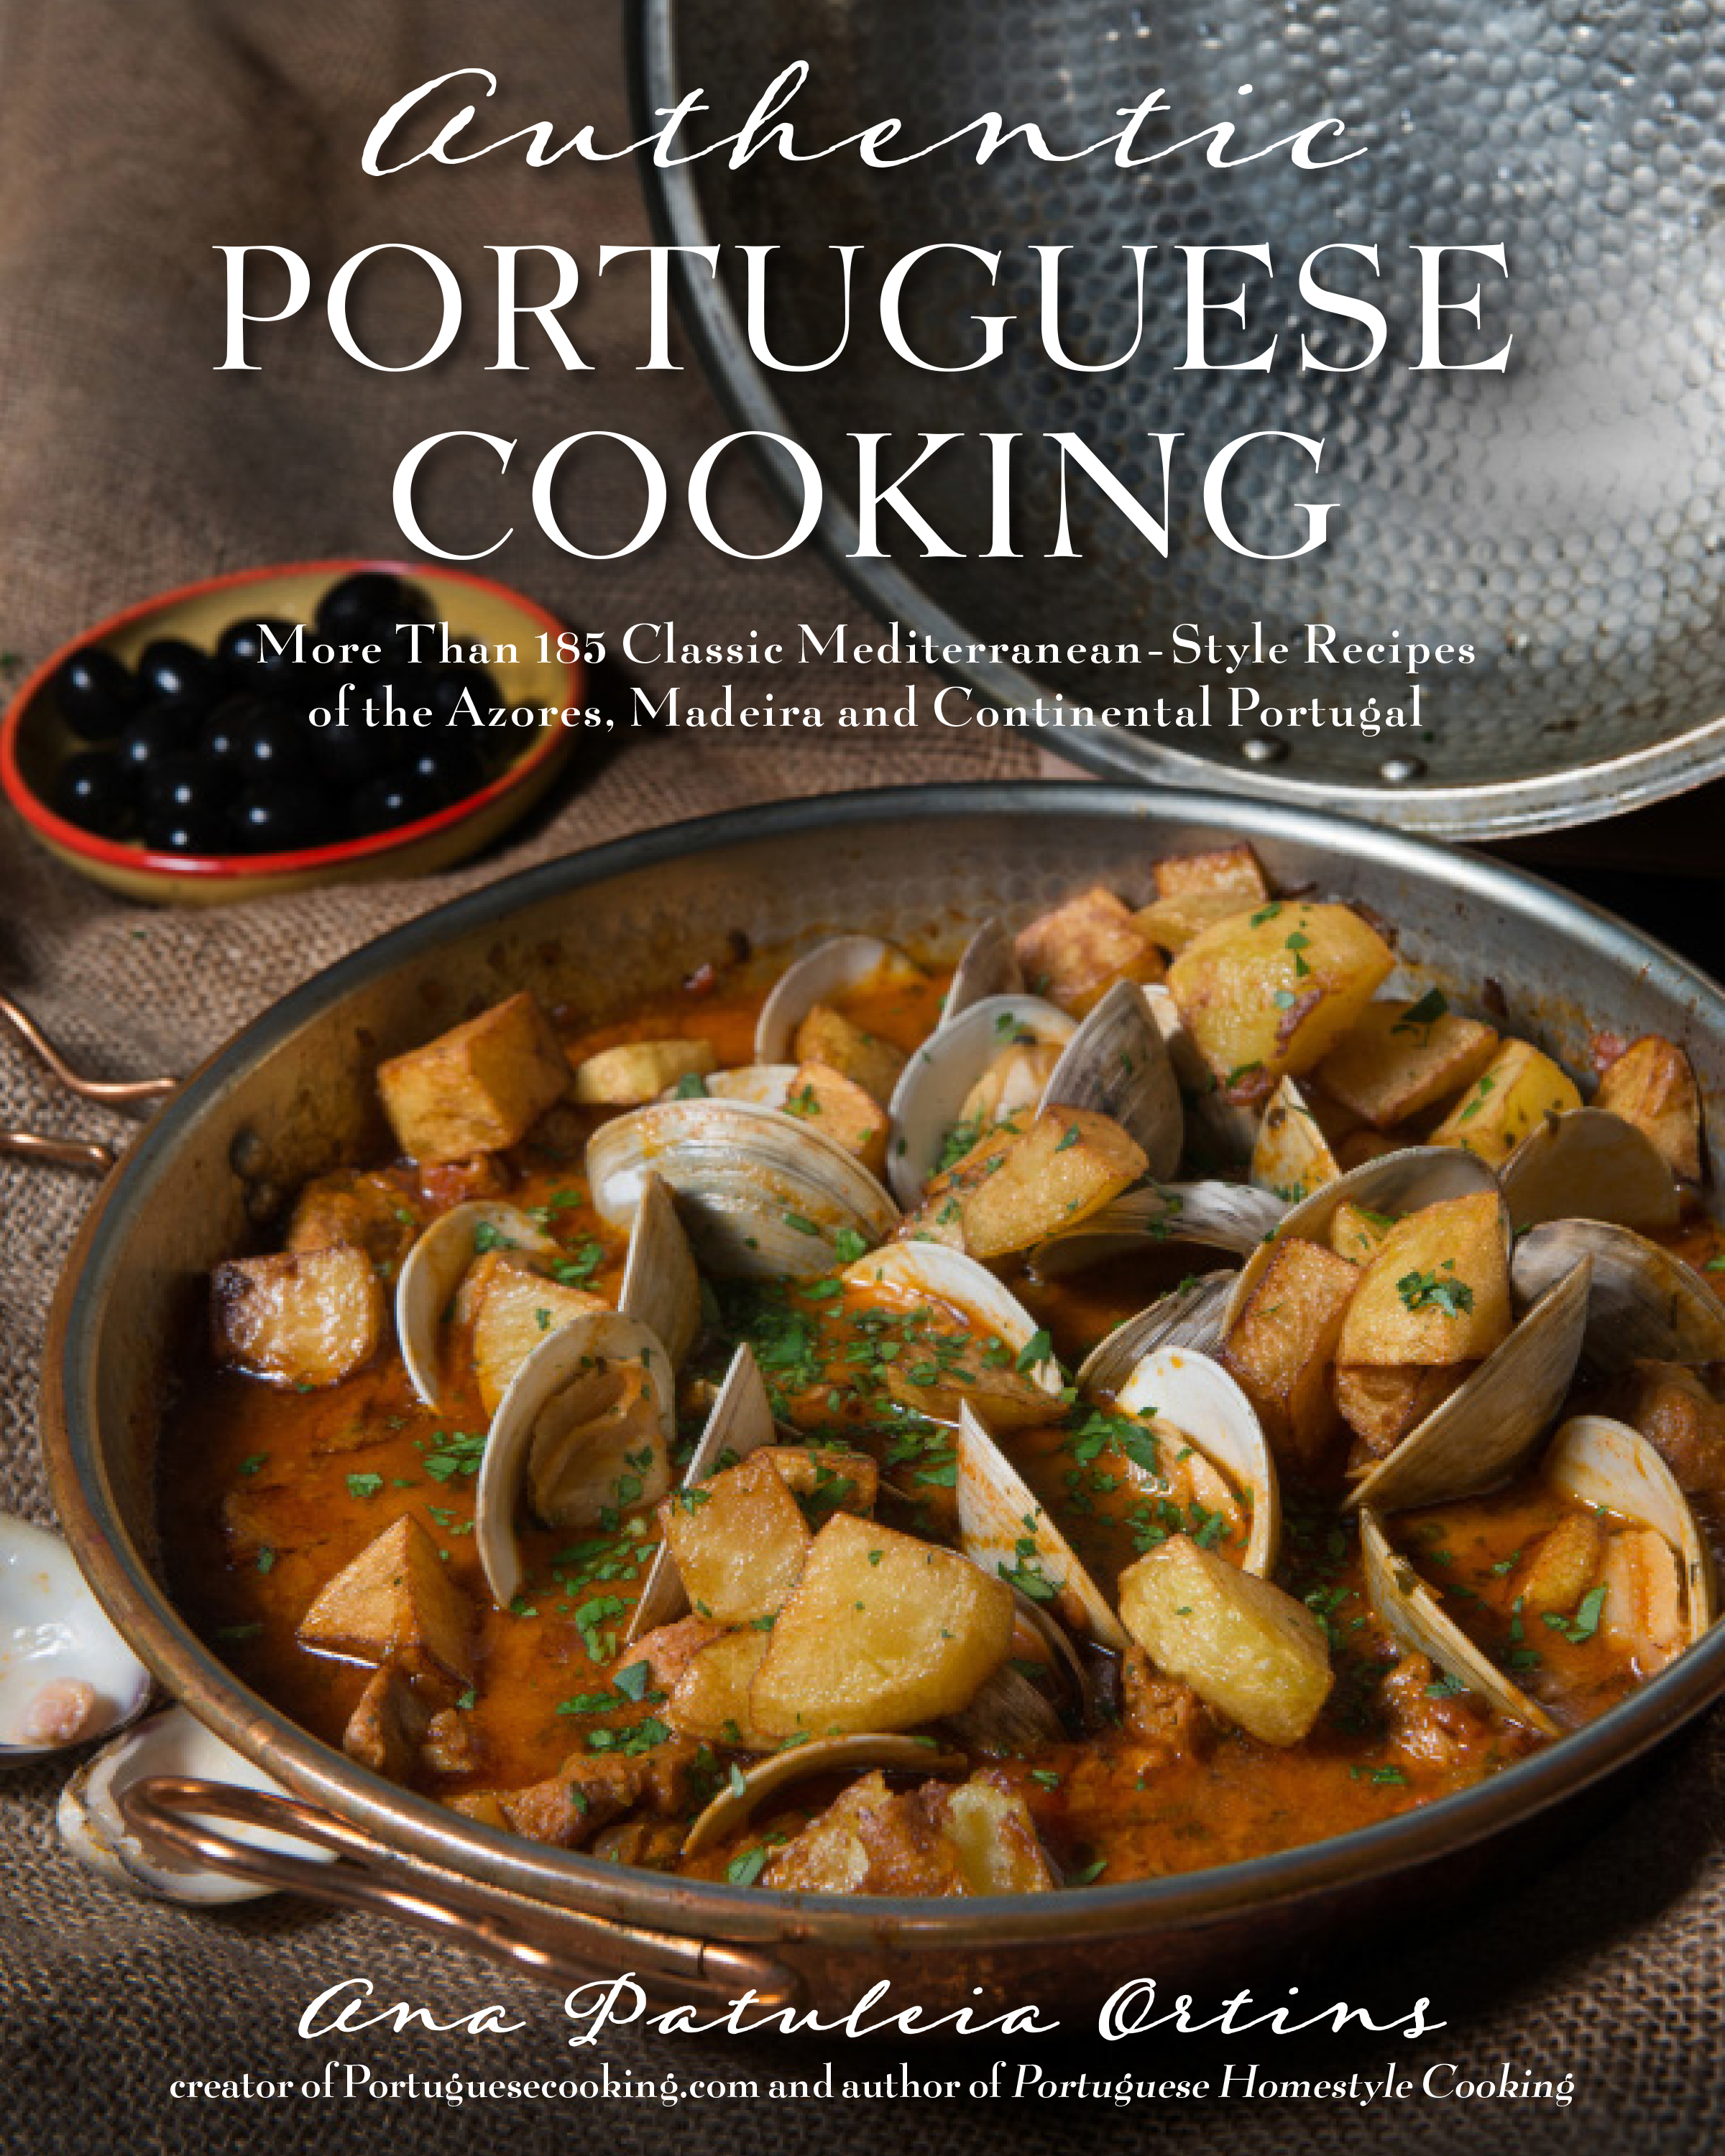 new portuguese cookbook brings